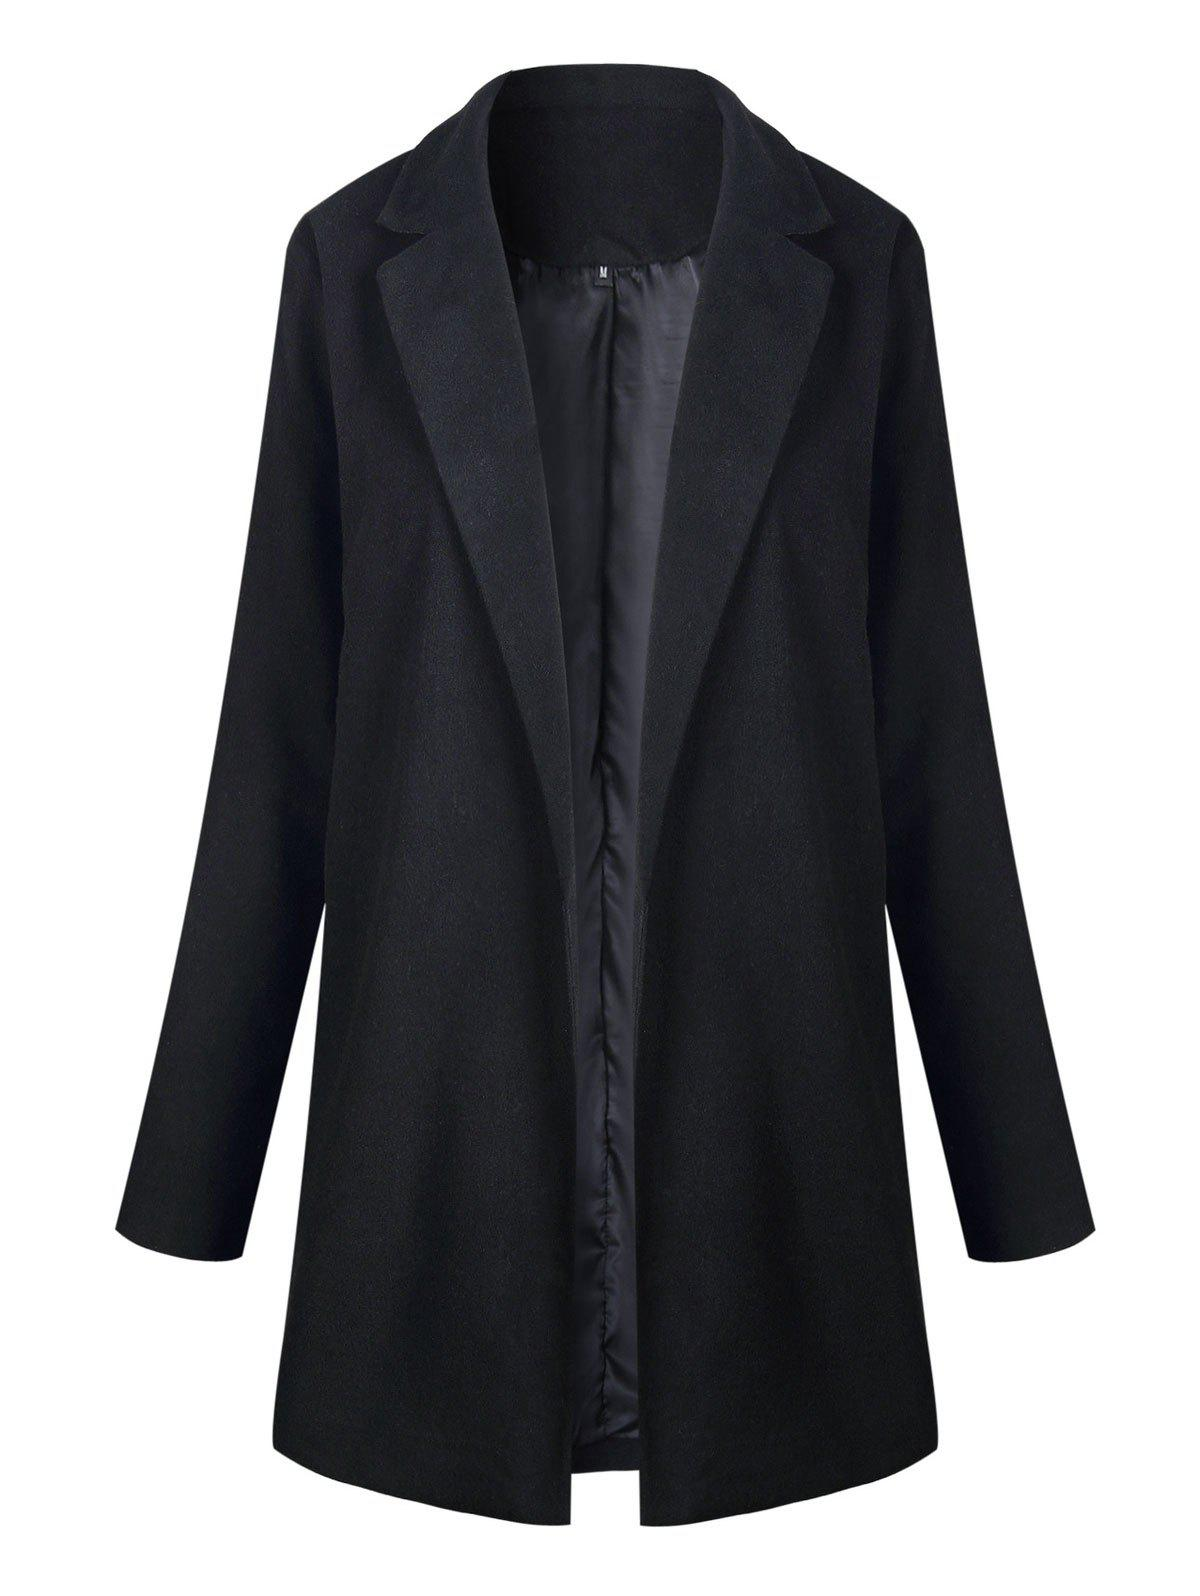 Slim Fit Long Lapel Blazer - Noir XL